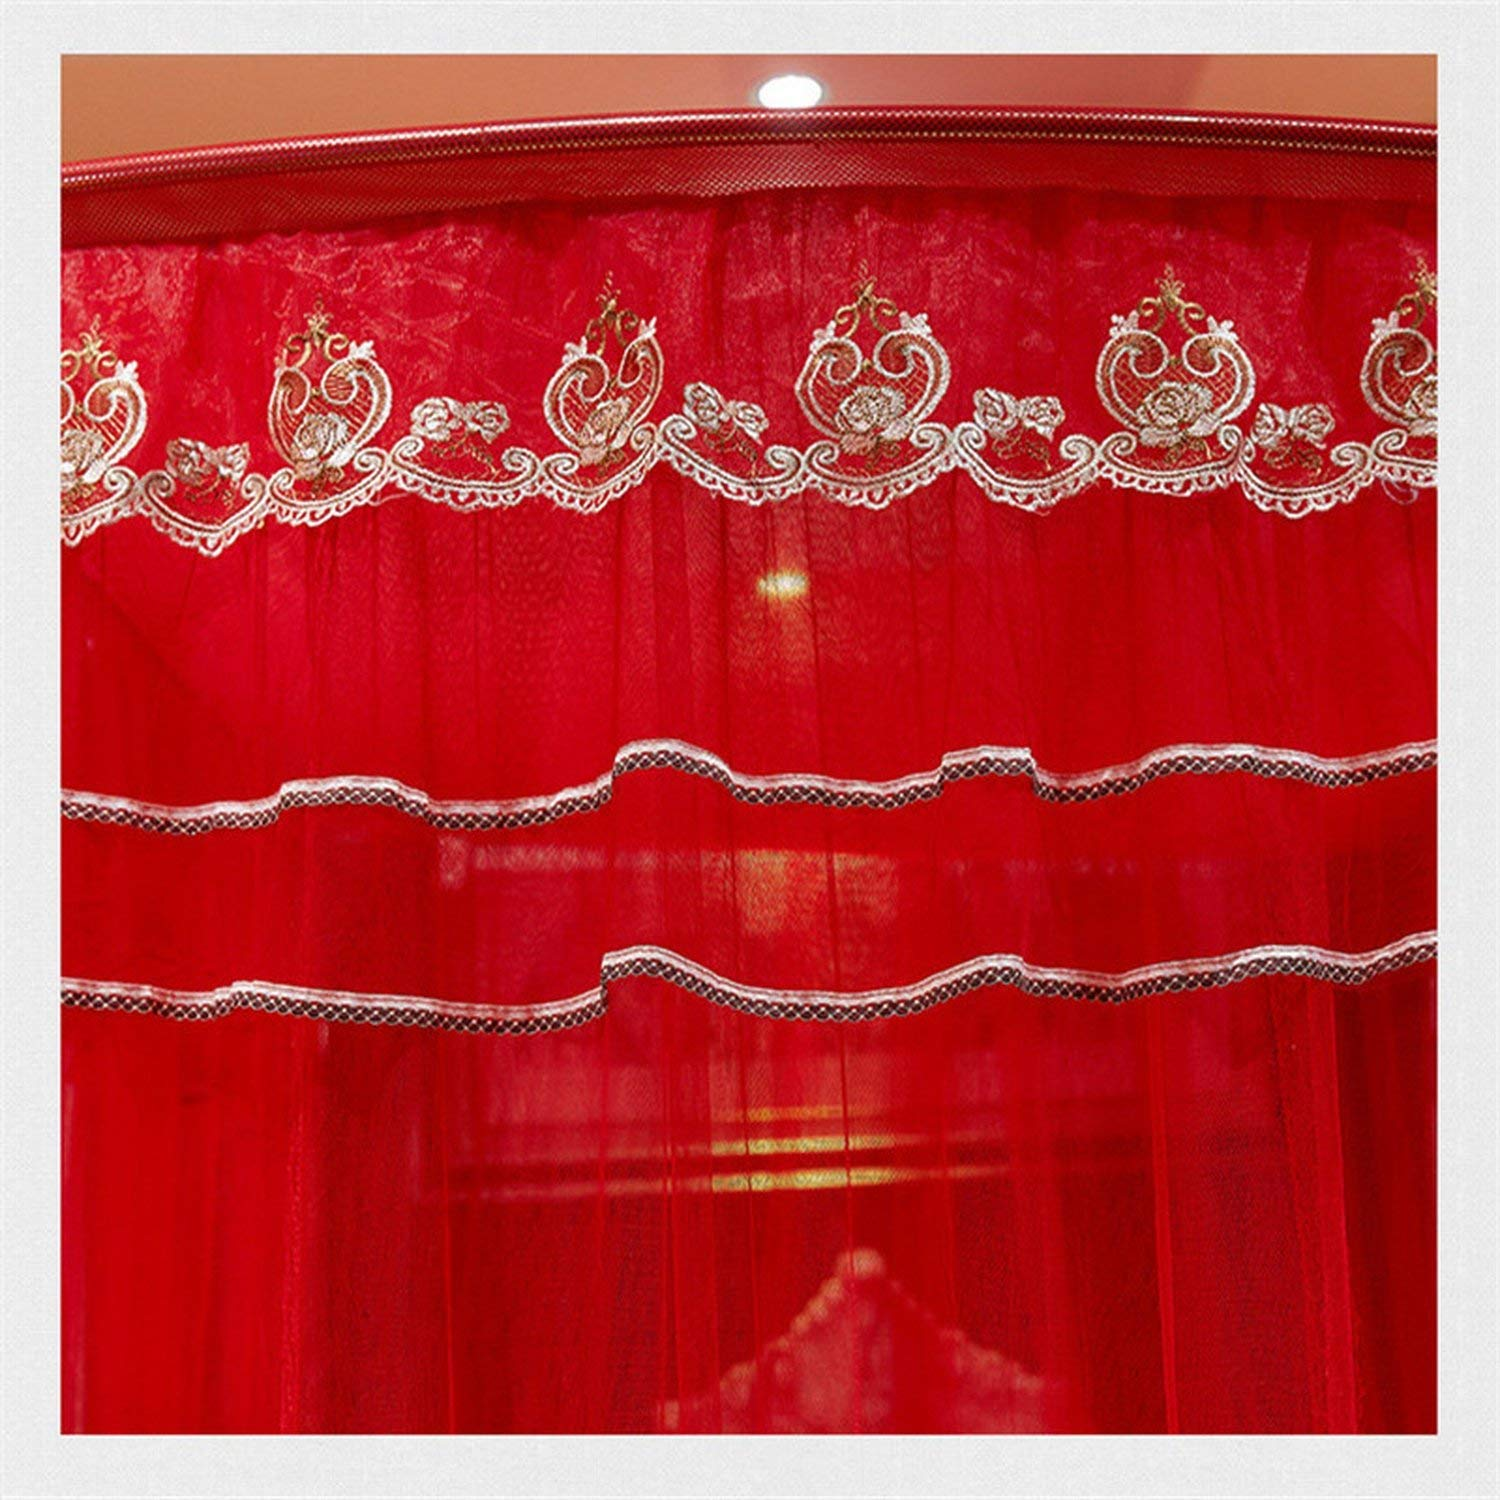 Fishing Rod Retractable Three Door Palace Mosquito Net Floor Standing Anti Mosquito Wedding Nets,Wedding Red Color,1.8Mwx2Mlx2.1Mh by special shine-shop mosquito net (Image #3)